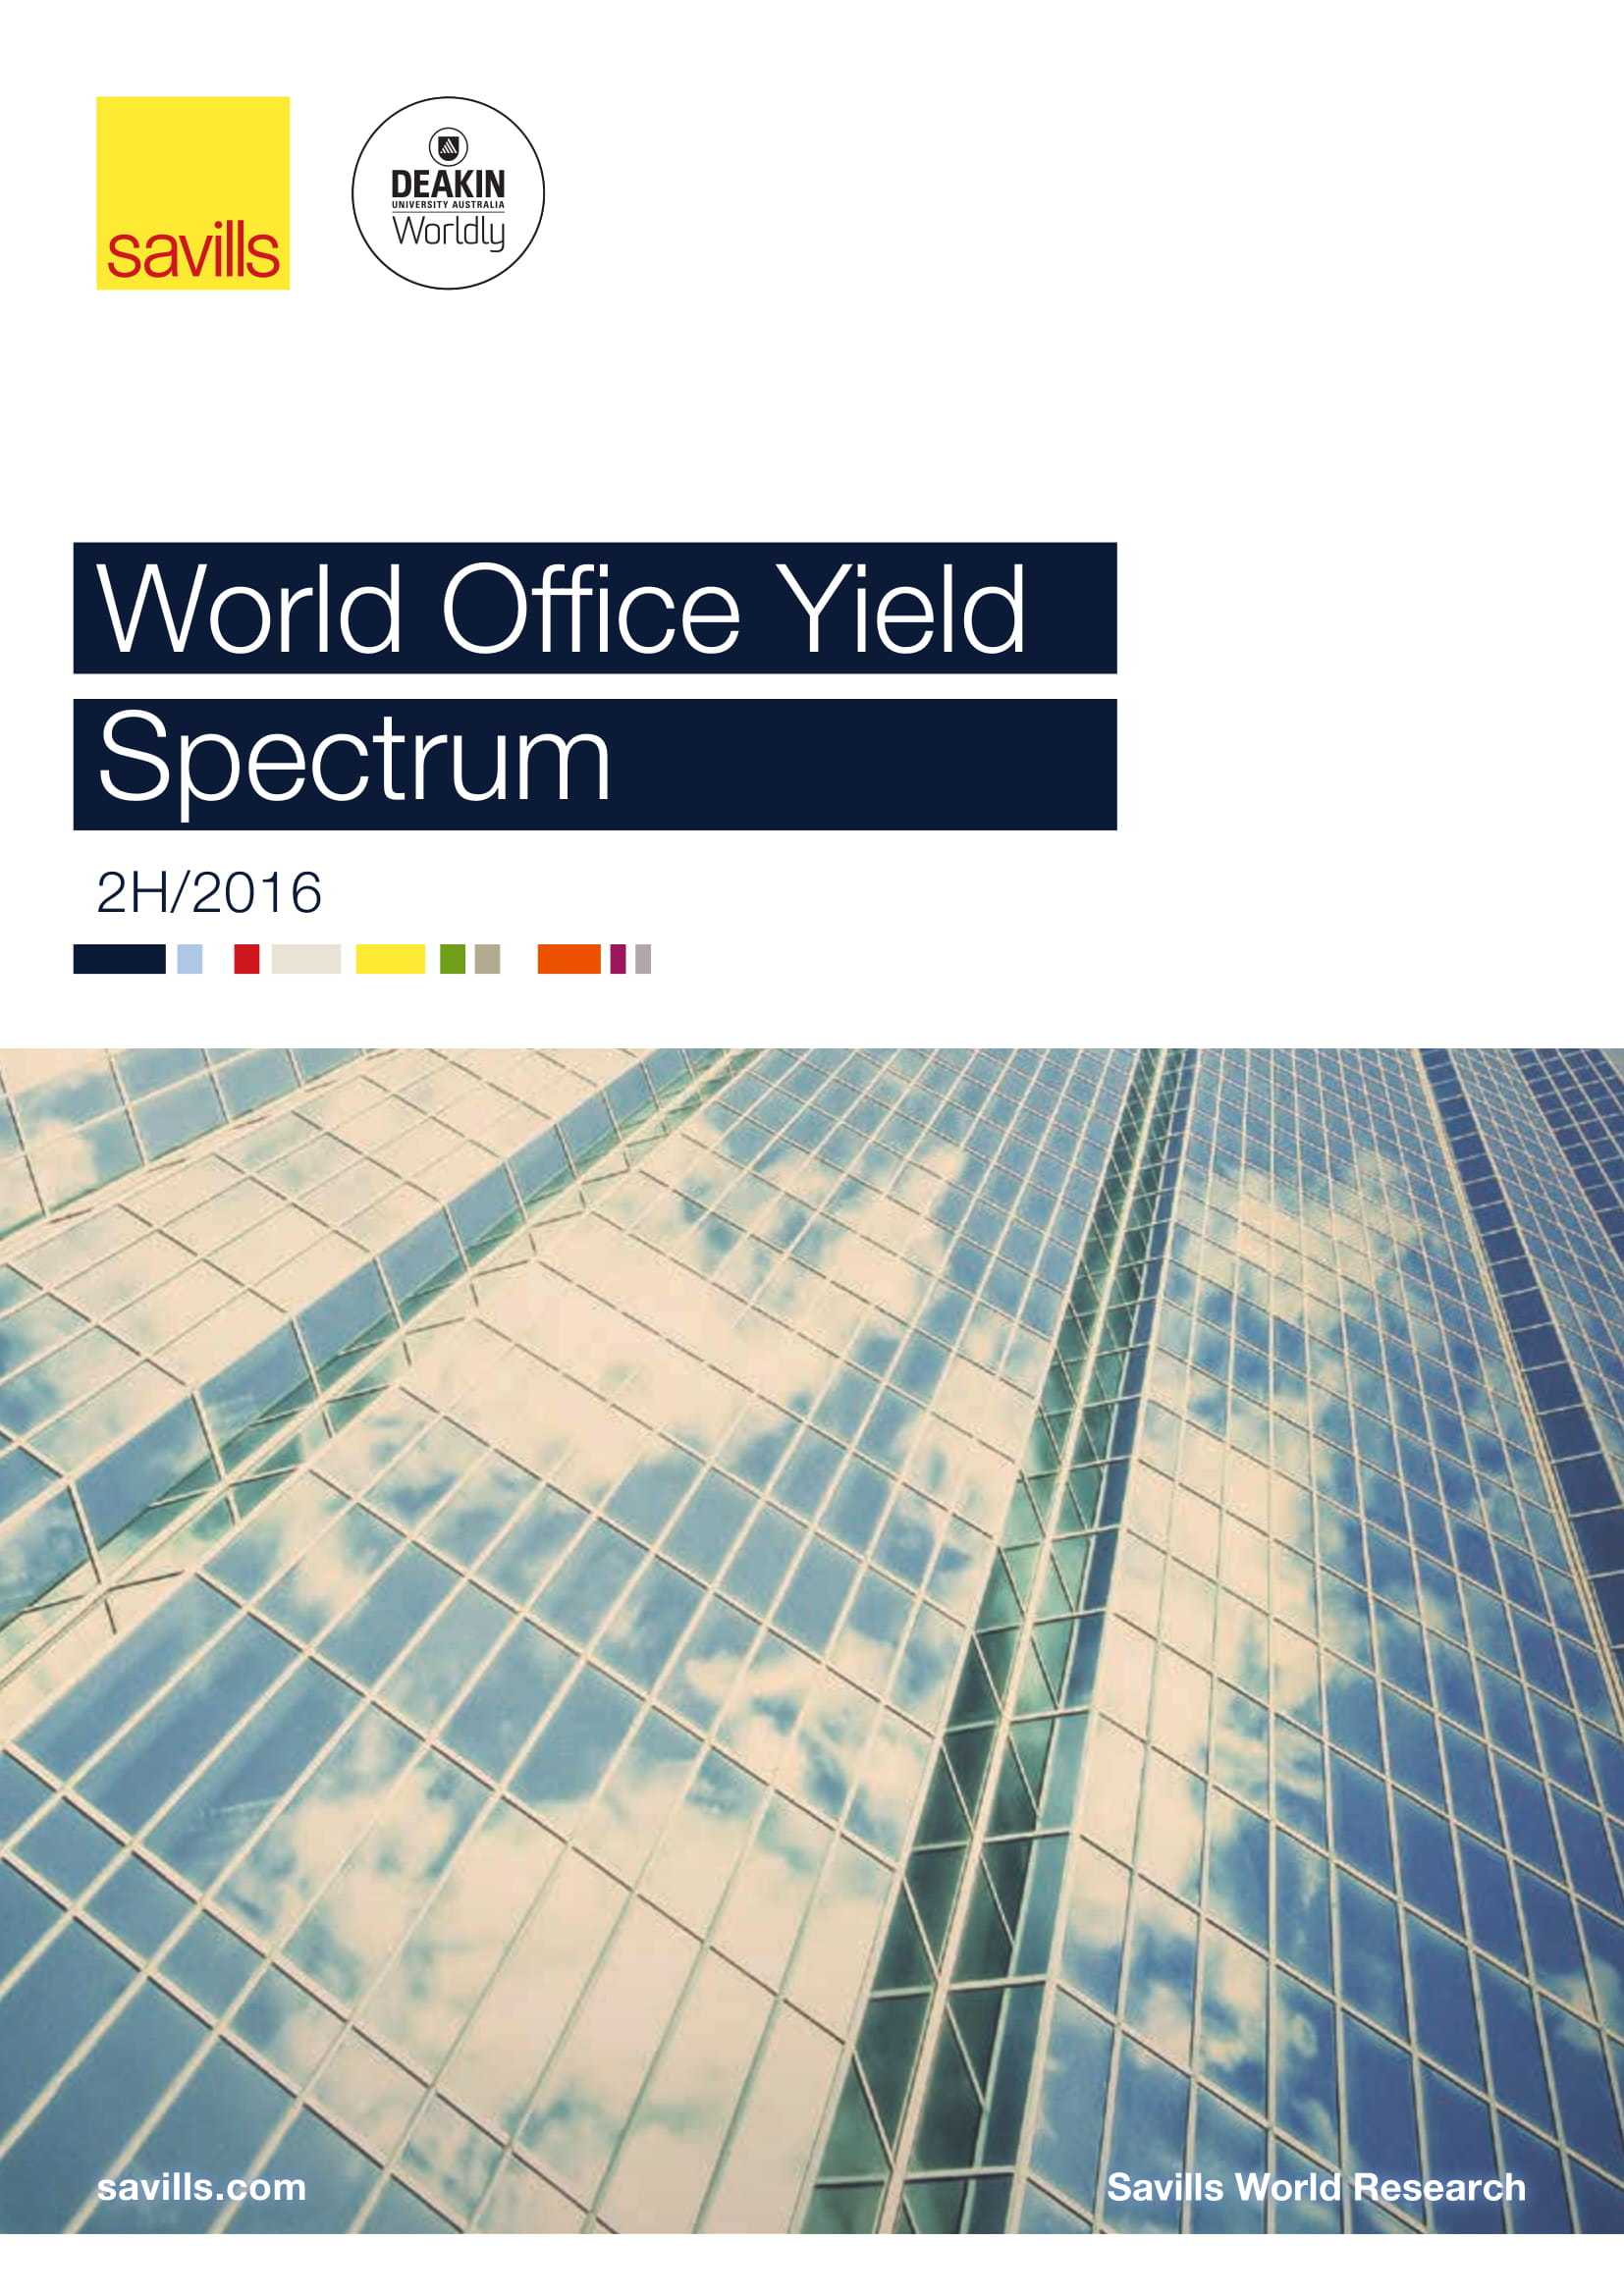 World Office Yield Spectrum 2H 2016